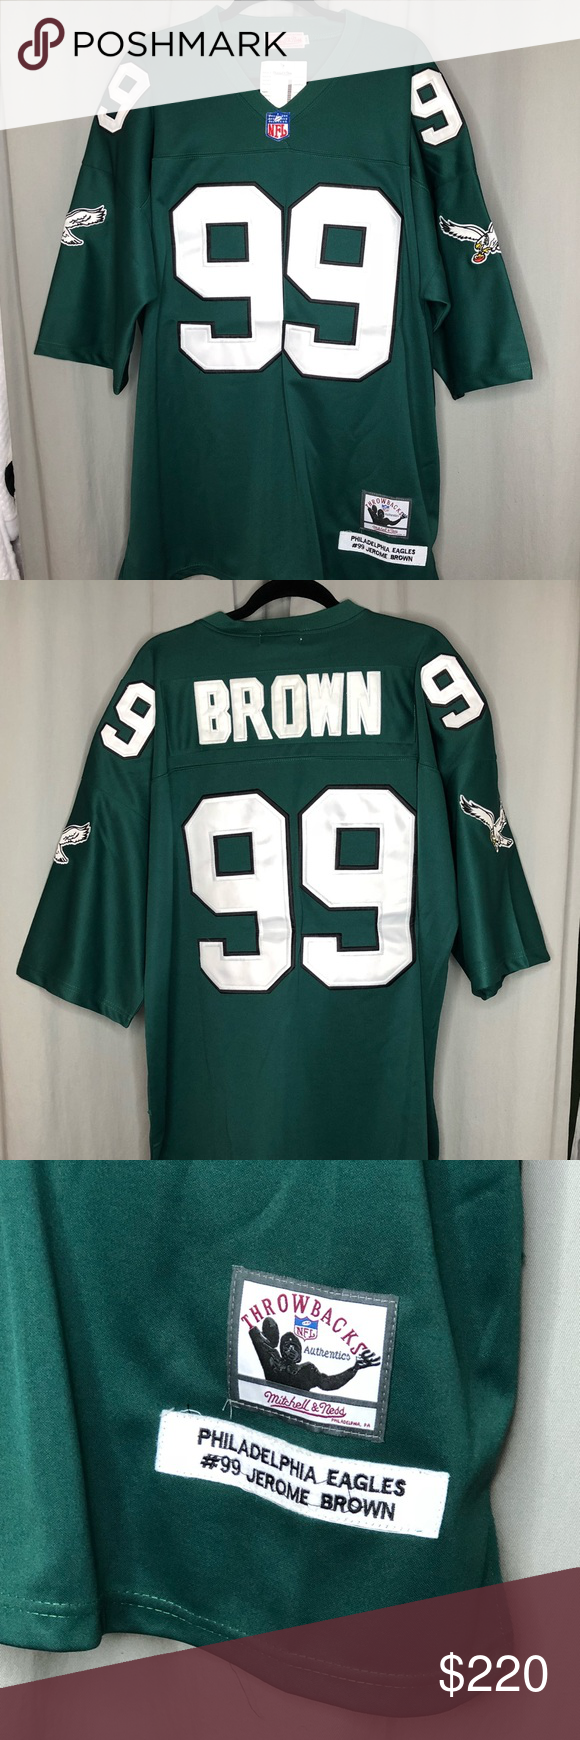 43d7c3b3a15 Authentic Throwback Eagles Jersey Jerome Brown #99 Authentic NFL Throwback  Eagles Jersey Jerome Brown #99 Looks and Smells Brand New ! Never Worn !